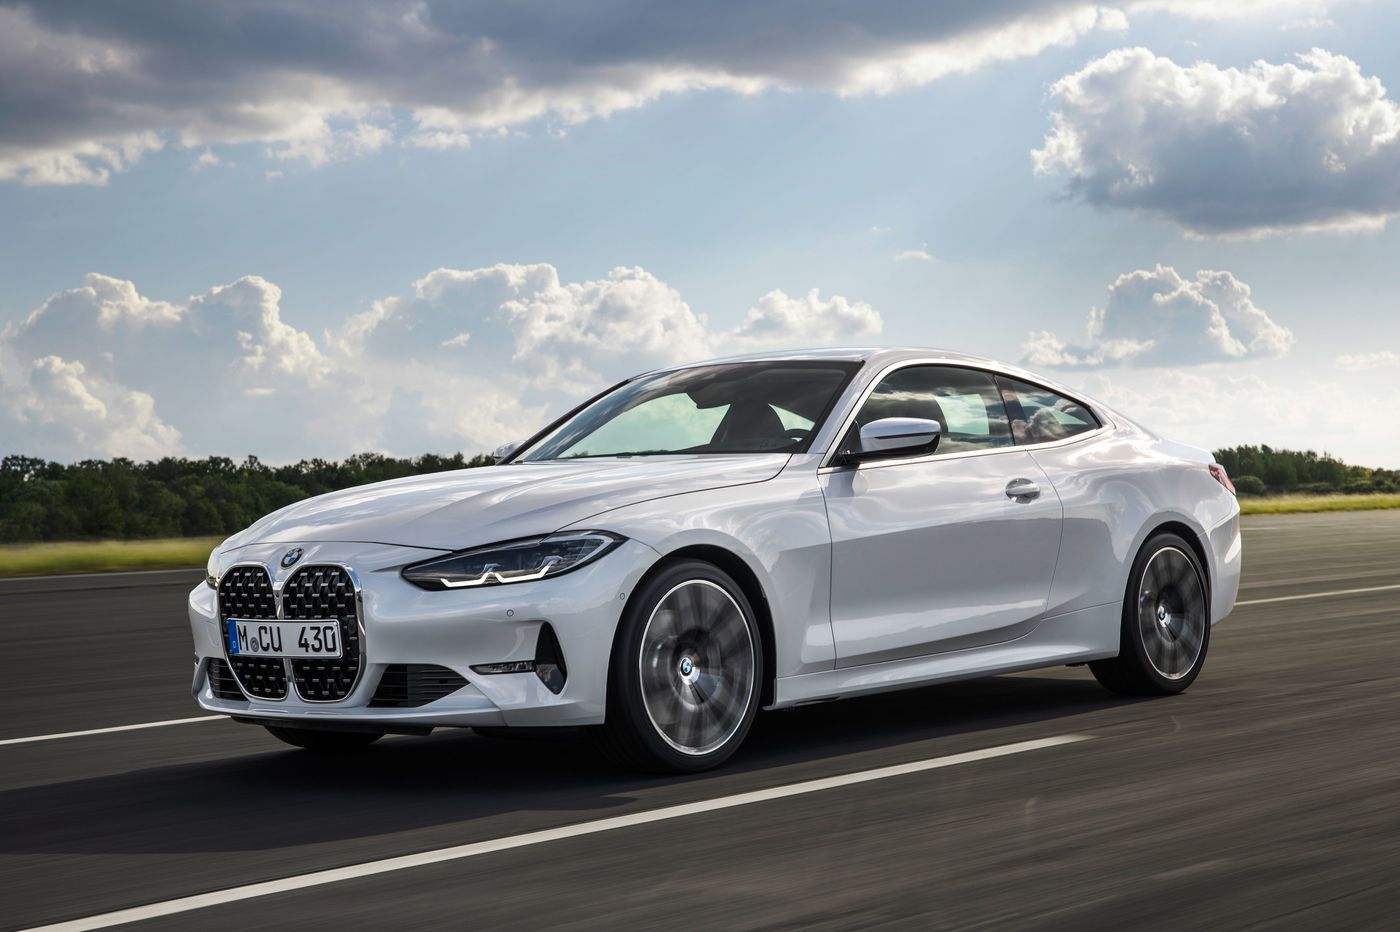 Redesigned 2021 BMW 4 Series gives RC350 and Corvette a run for the money